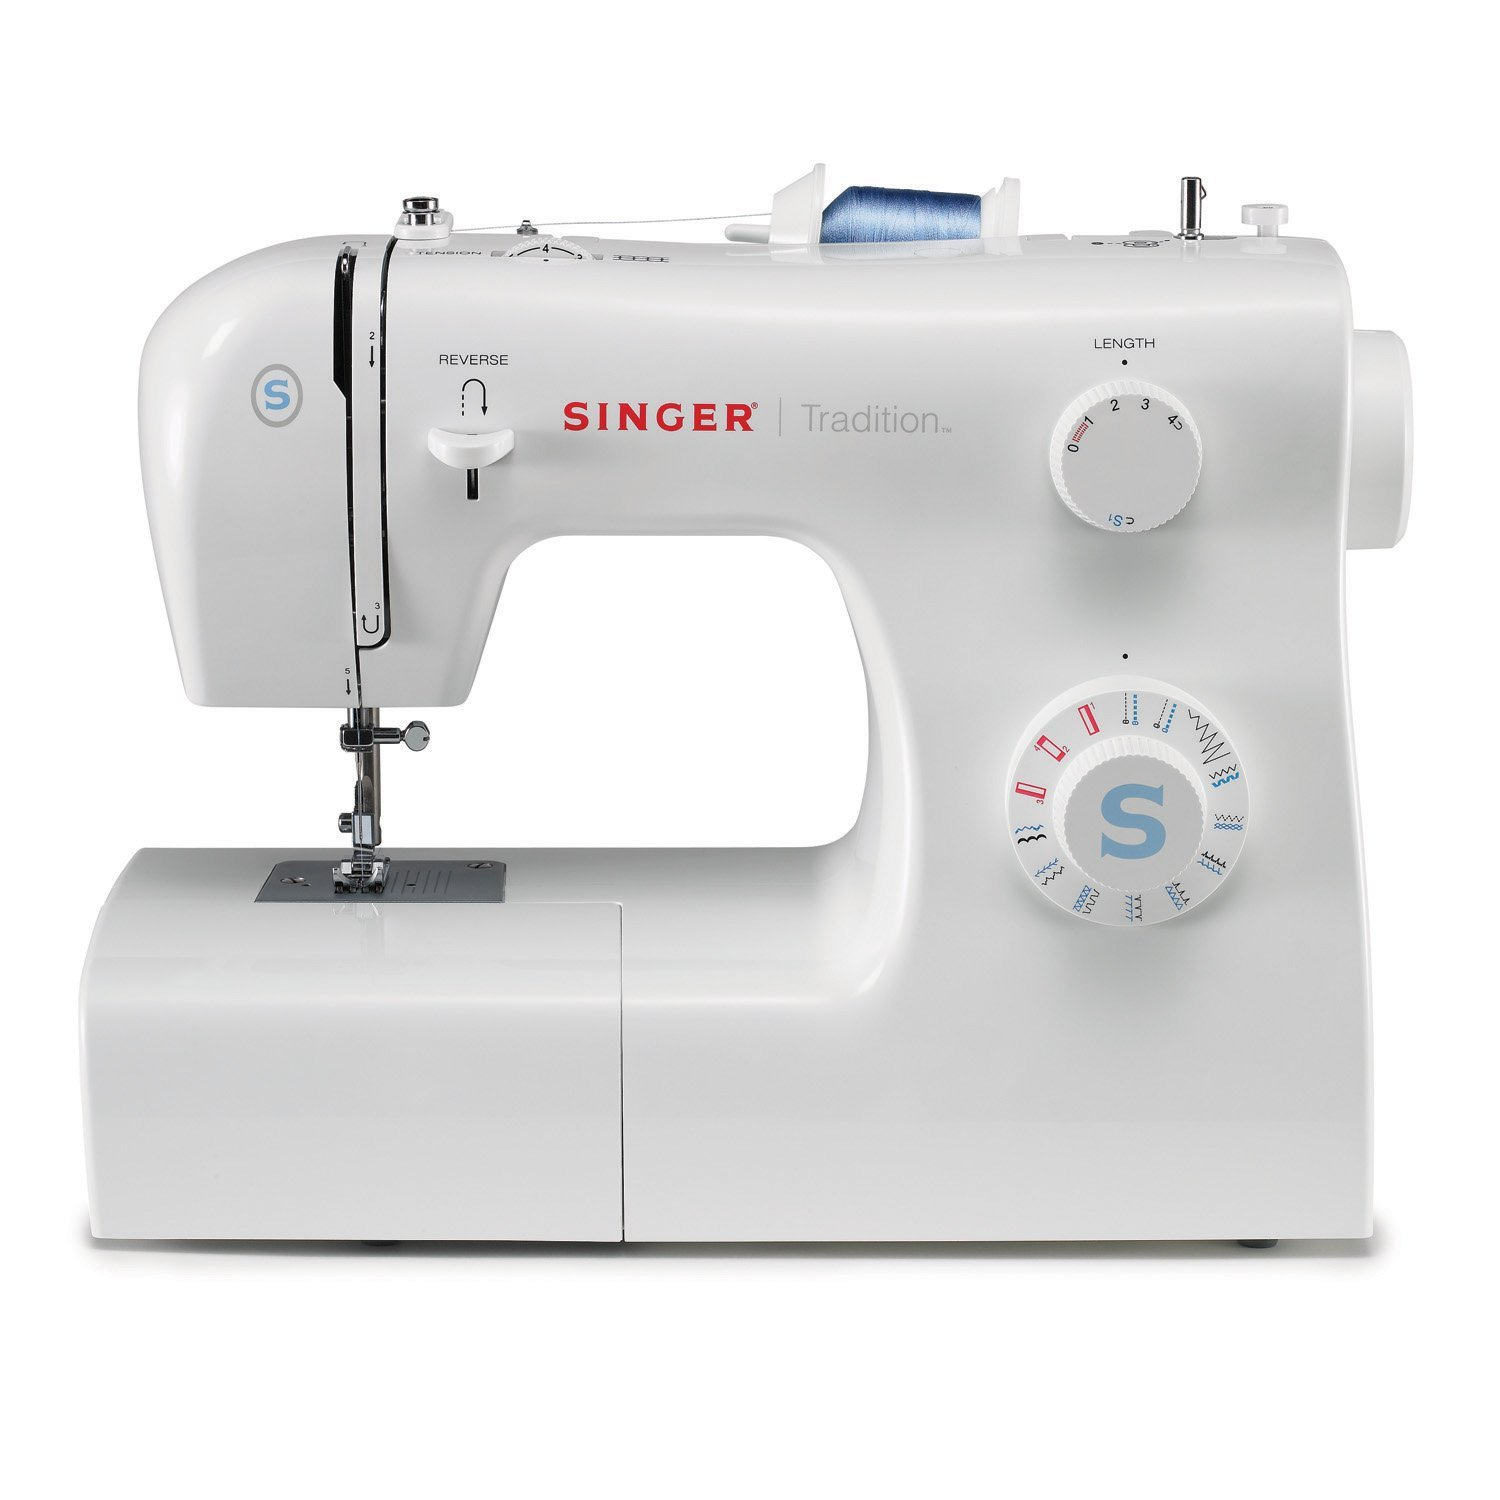 Top 10 Singer Sewing & Embroidery Machines (June 2020 ...